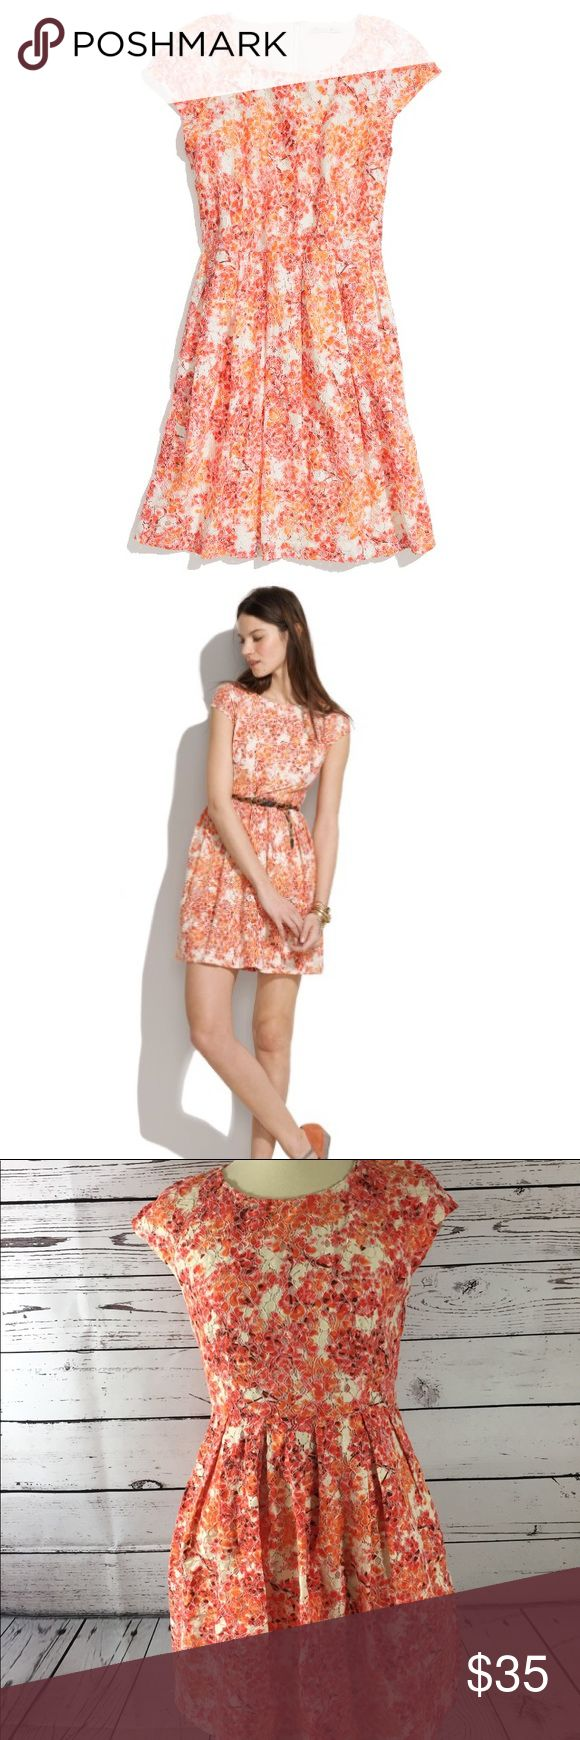 Madewell Women's Floral Painted Cotton Blend 6 Madewell 1937 Women's Floral Laceboom Cotton Blend Dress Size 6  Type:Dress Style:Floral laceboom Brand:Madewell Material:Cotton 61% nylon 39% Color: orange,white Conditions:Used-no rips or no pilling Stock Number:0002   Please compare measurement to own favorite clothing to help avoid having a return. Measurements are approximate:  Waist:31 Hips:34 Total length:31   Please look at the pictures for the details,and contact me for any questions…